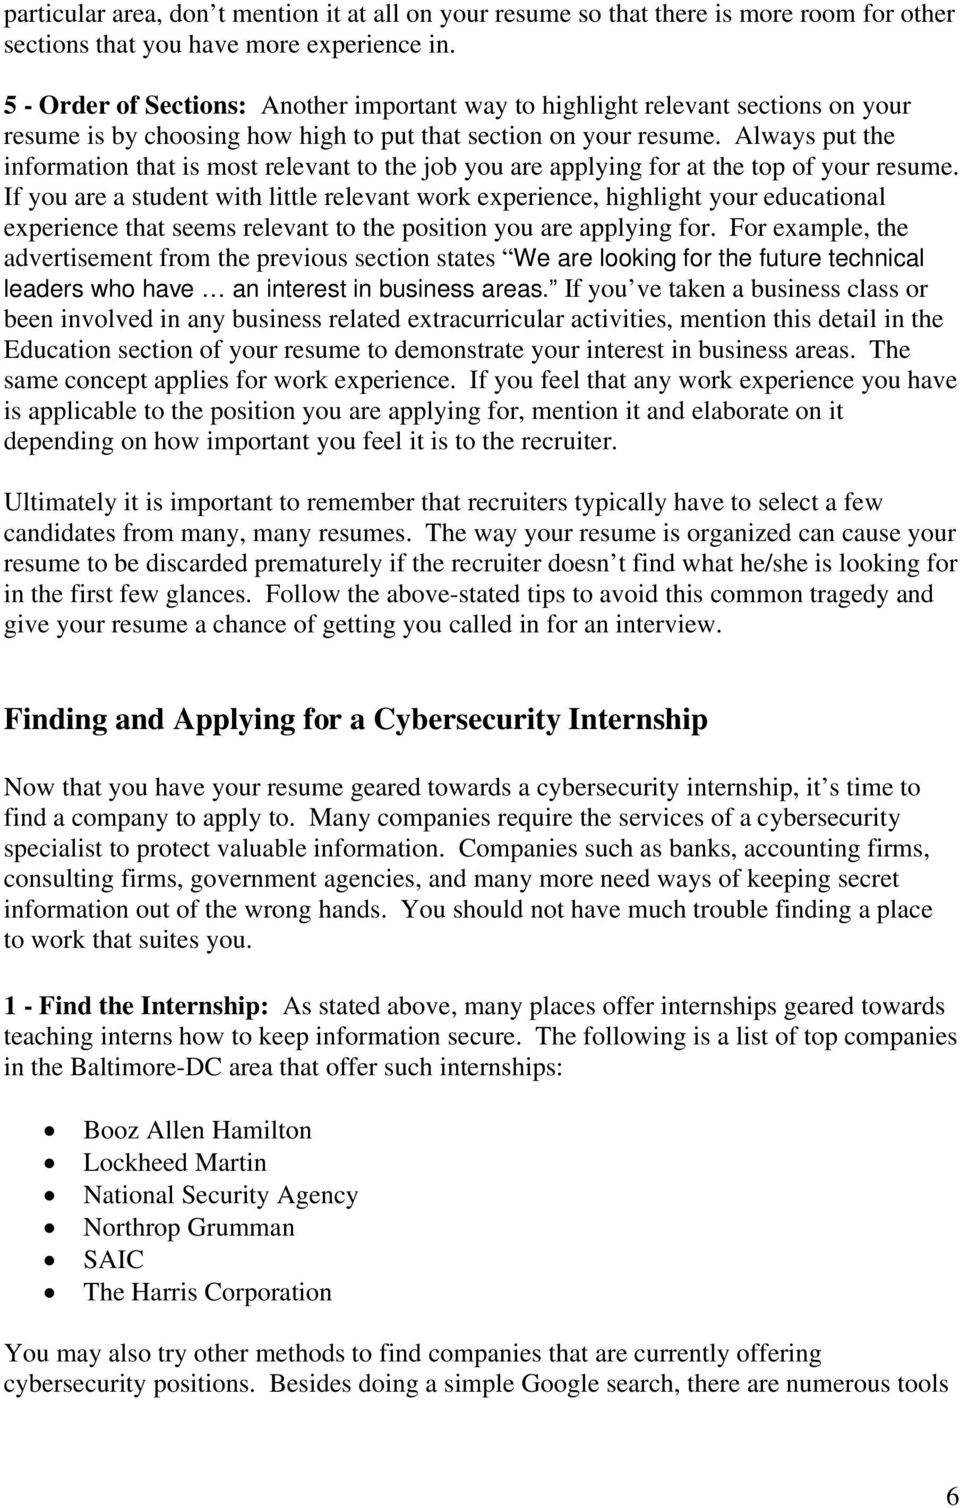 How to Get Hired for a Cybersecurity Internship  by Wilton